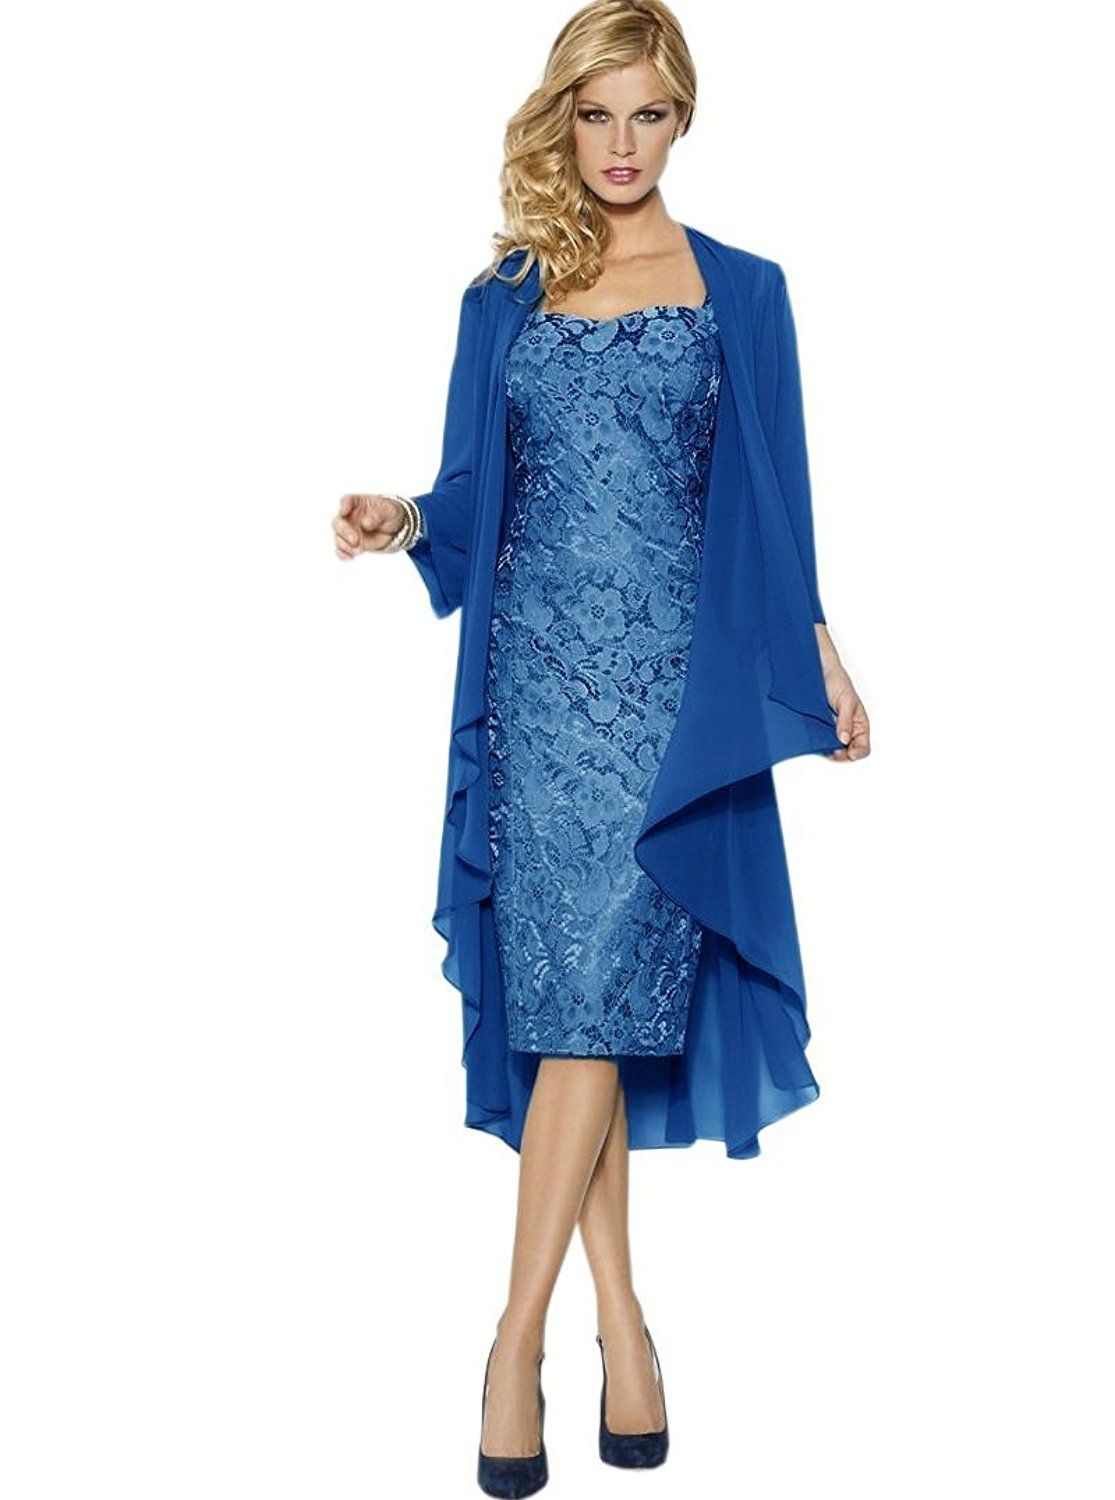 Uryouthstyle Lake Blue Lace Tea Length Mother of the Bride Dress ...